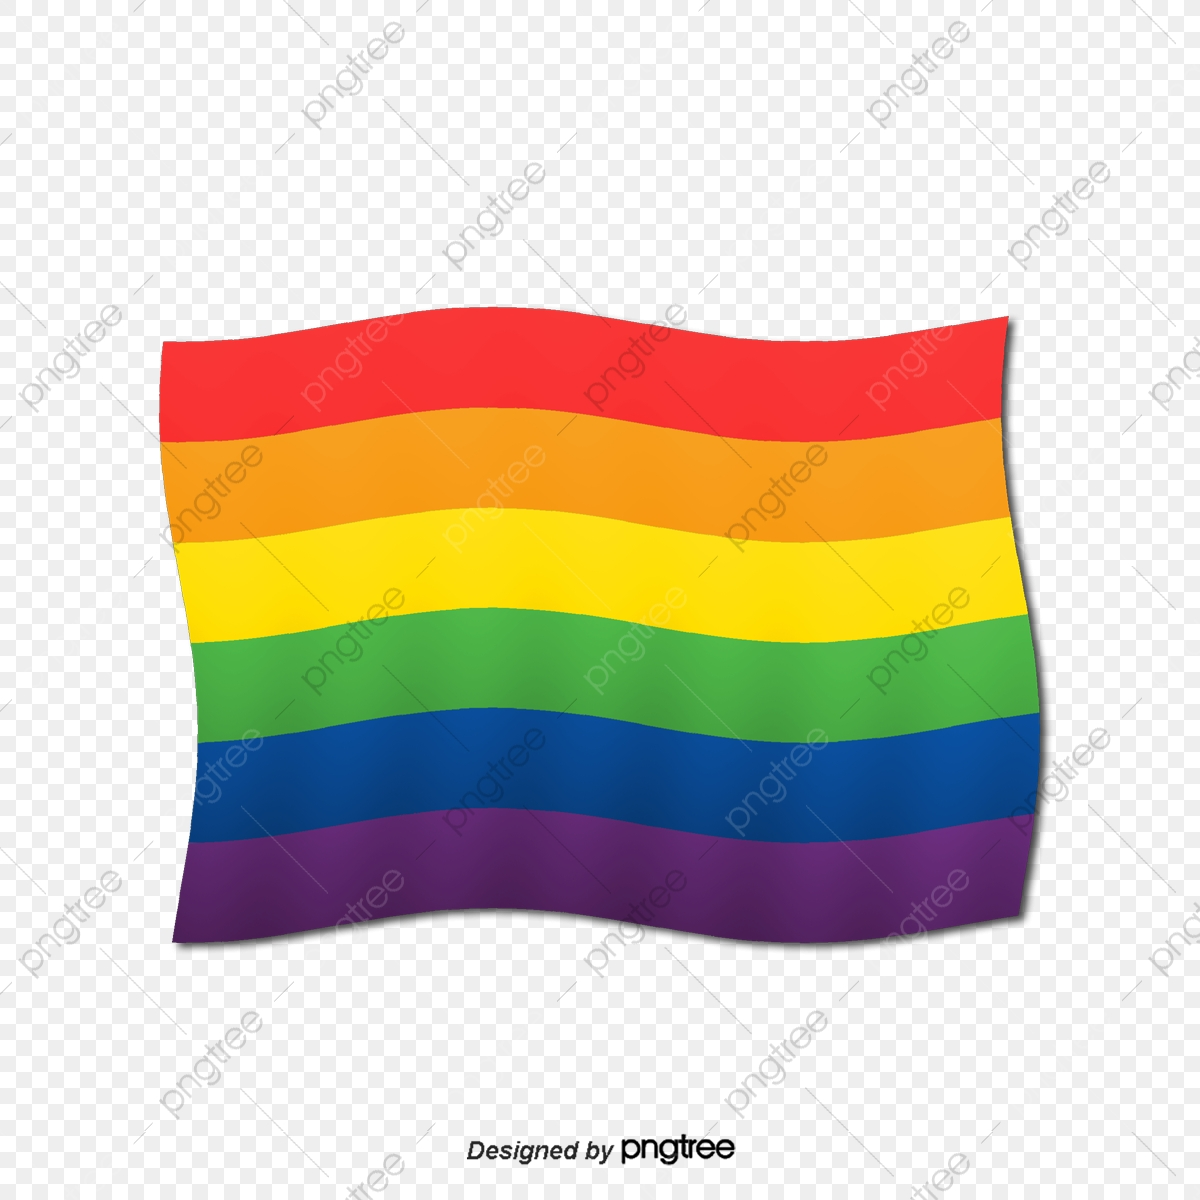 Bandeira lgbt download free clip art with a transparent.